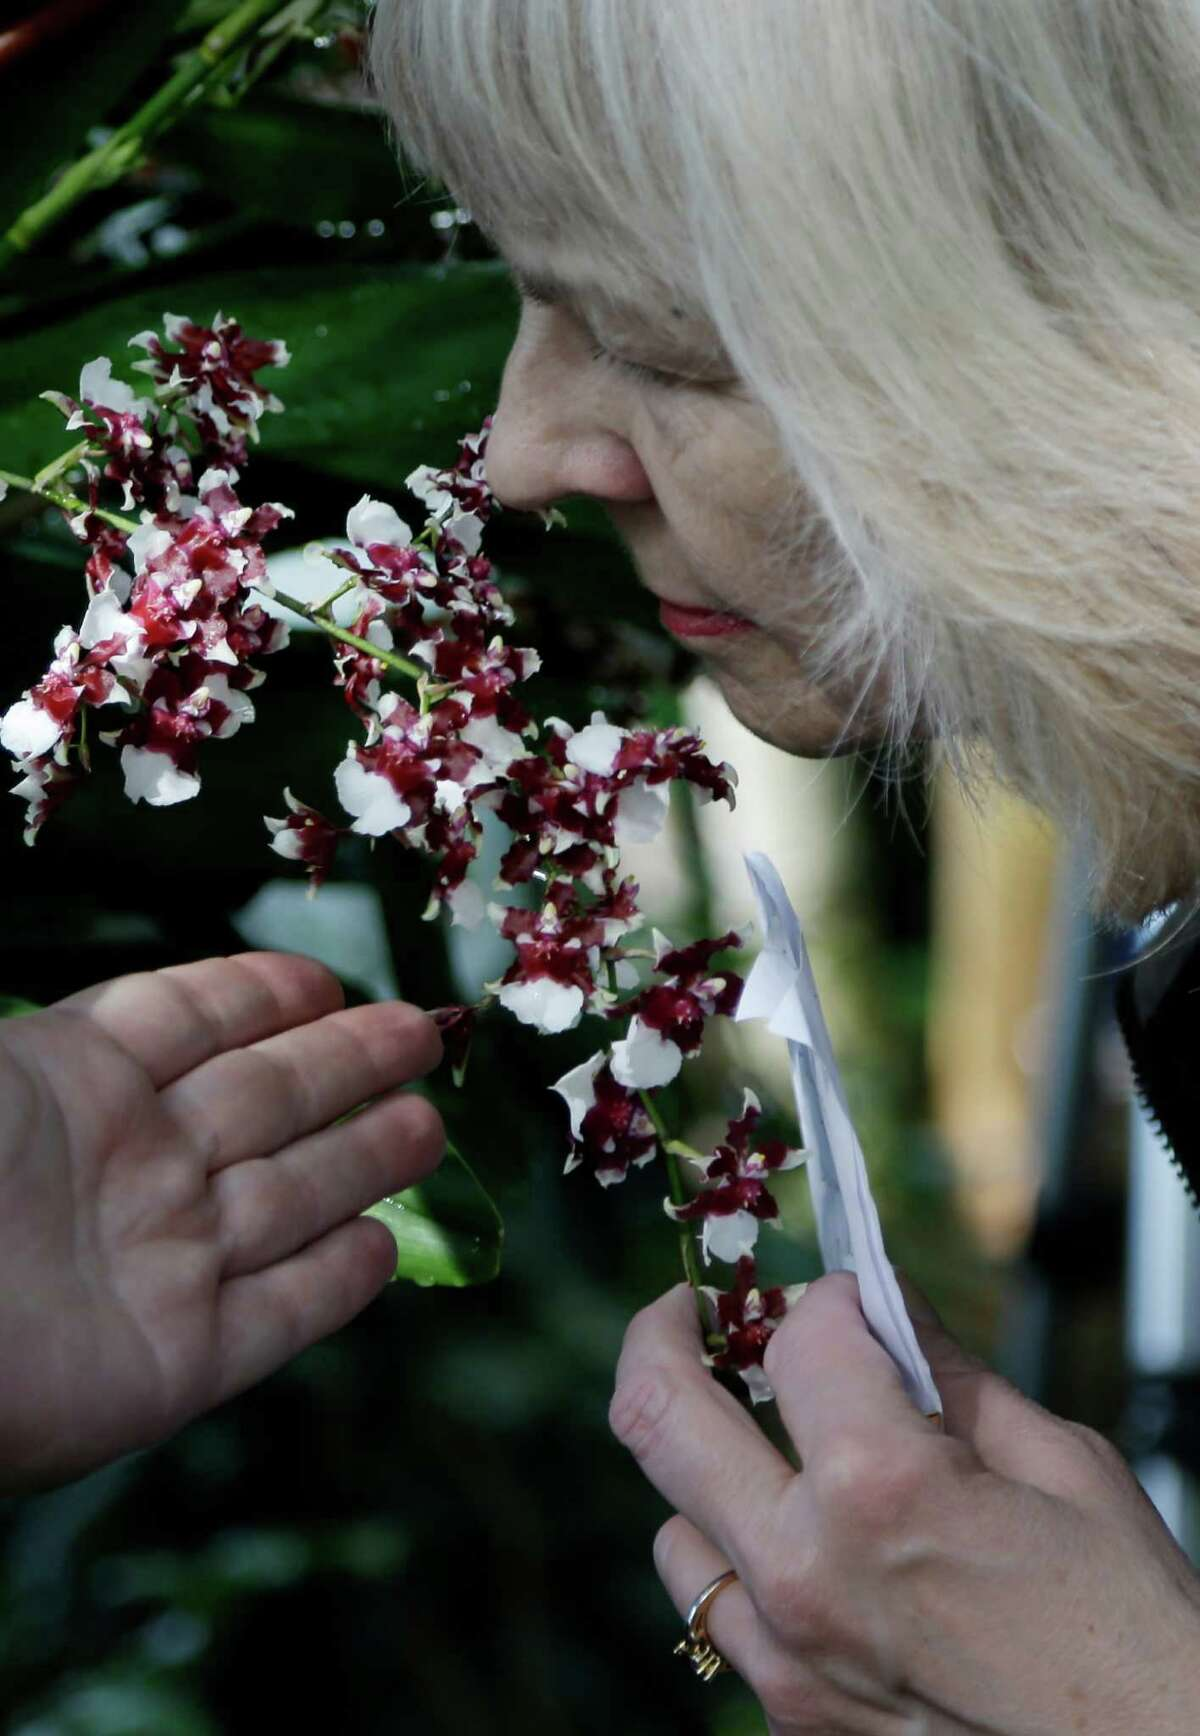 A woman smells Sharry Baby, also known as the chocolate orchid, during a press preview of the orchid show at the New York Botanical Gardens in New York, Thursday, Feb. 28, 2013. The botanical gardens will open their annual orchid show to the public on March 2, 2013